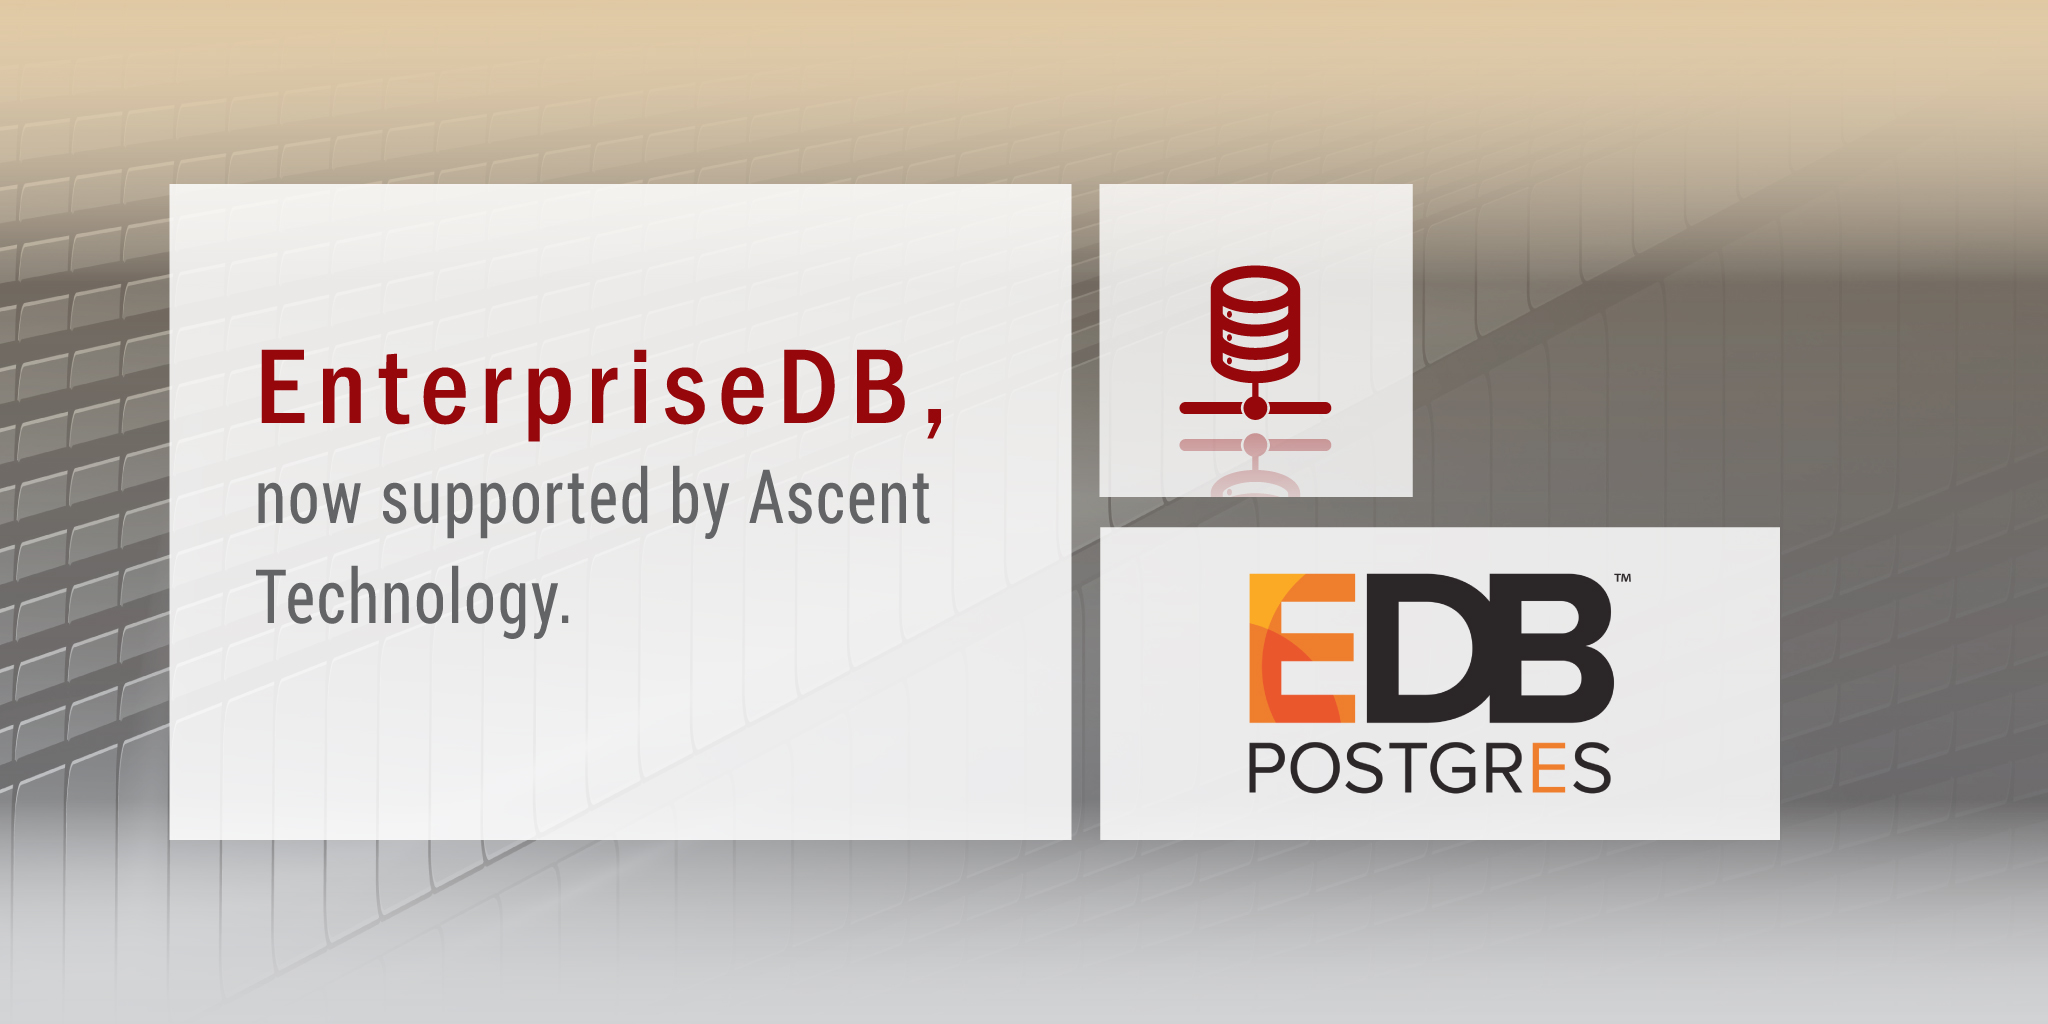 EnterpriseDB now supported by Ascent Technology